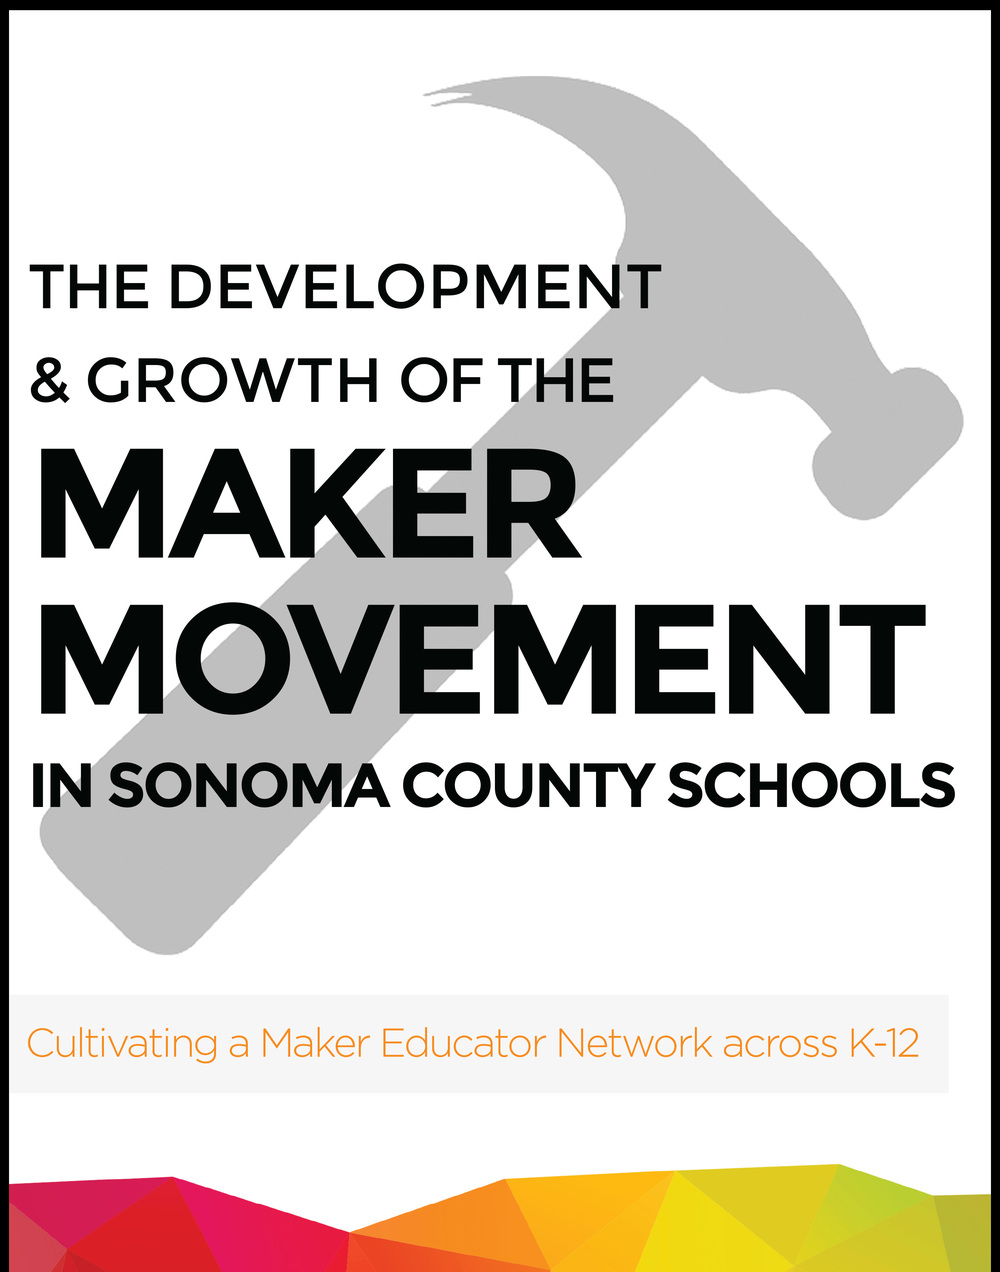 download the case study We prepared for the white house about Making in Sonoma County schools